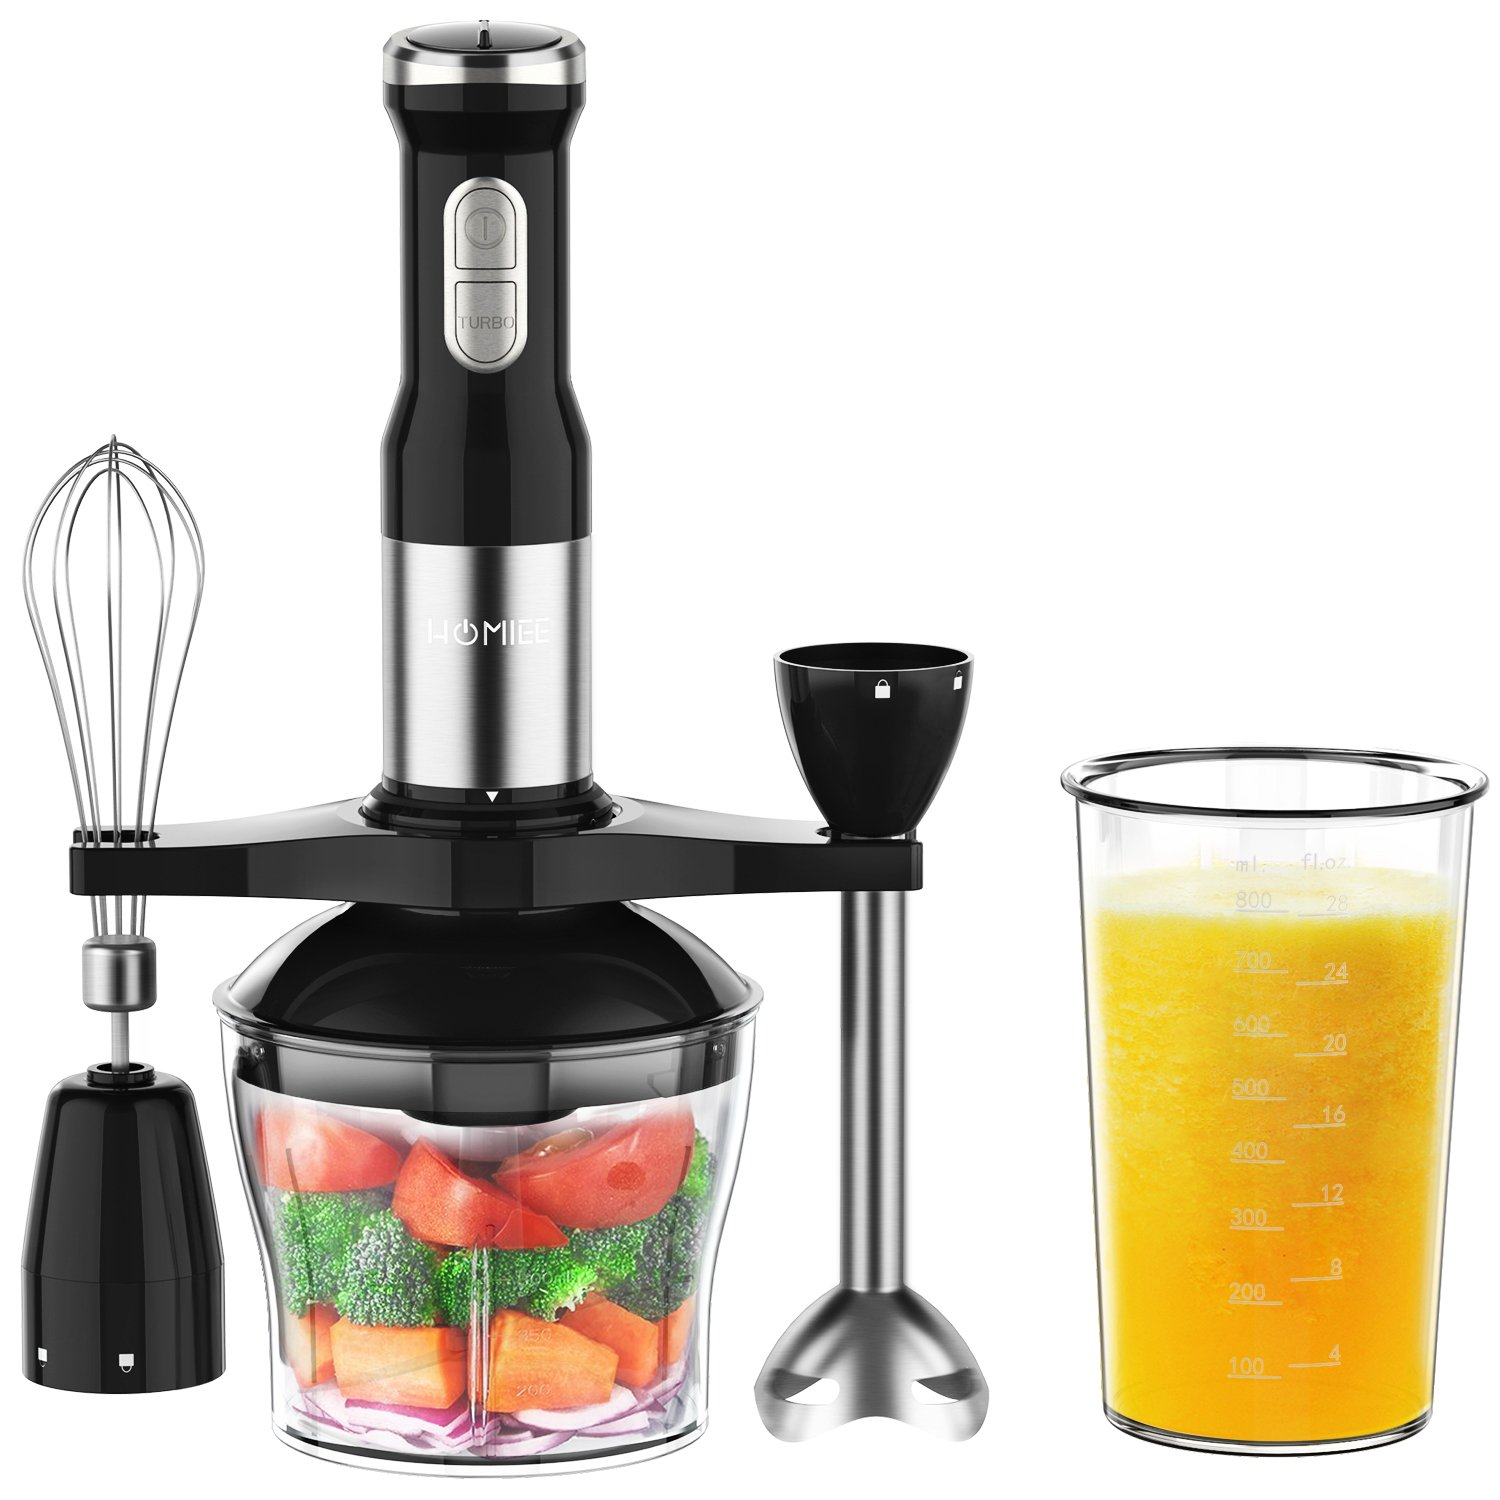 HOMIEE Hand Blender, Multi-Purpose 5-in-1 Immersion Blender Stick with 15-Speed Control and Turbo for Baby Food & Kitchen Use, Including Stainless Chopper, Egg Whisk, 800ML BPA-Free Beaker & Storage Bracket, Black 141[並行輸入]   B07D5VK94L